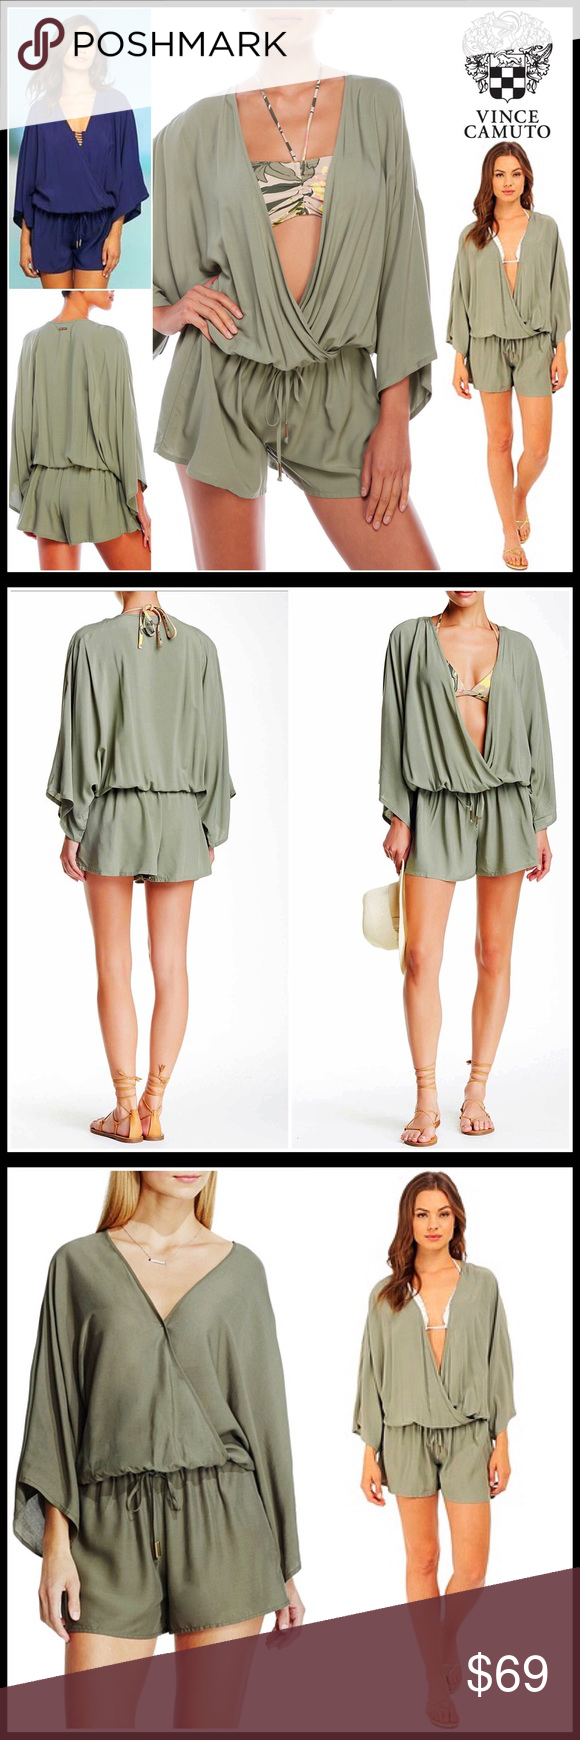 """⭐⭐ VINCE CAMUTO Resort Romper 💟NEW WITH TAGS💟  SIZING- M/L = approx sizes 8-12 VINCE CAMUTO Resort Romper  * Relaxed cover-up style  * Surplice neck, elasticized waist w/faux drawstring & long kimono sleeves   * Super comfortable style  * Approx 35"""" long;3.5"""" inseam  * Lightweight fabric    FABRIC-100% Viscose COLOR-Sage Item- # Pastel # Shirt dress jumpsuit  🚫No Trades🚫 ✅ Offers Considered*✅  *Please use the blue 'offer' button to submit an offer. Vince Camuto Dresses Mini"""